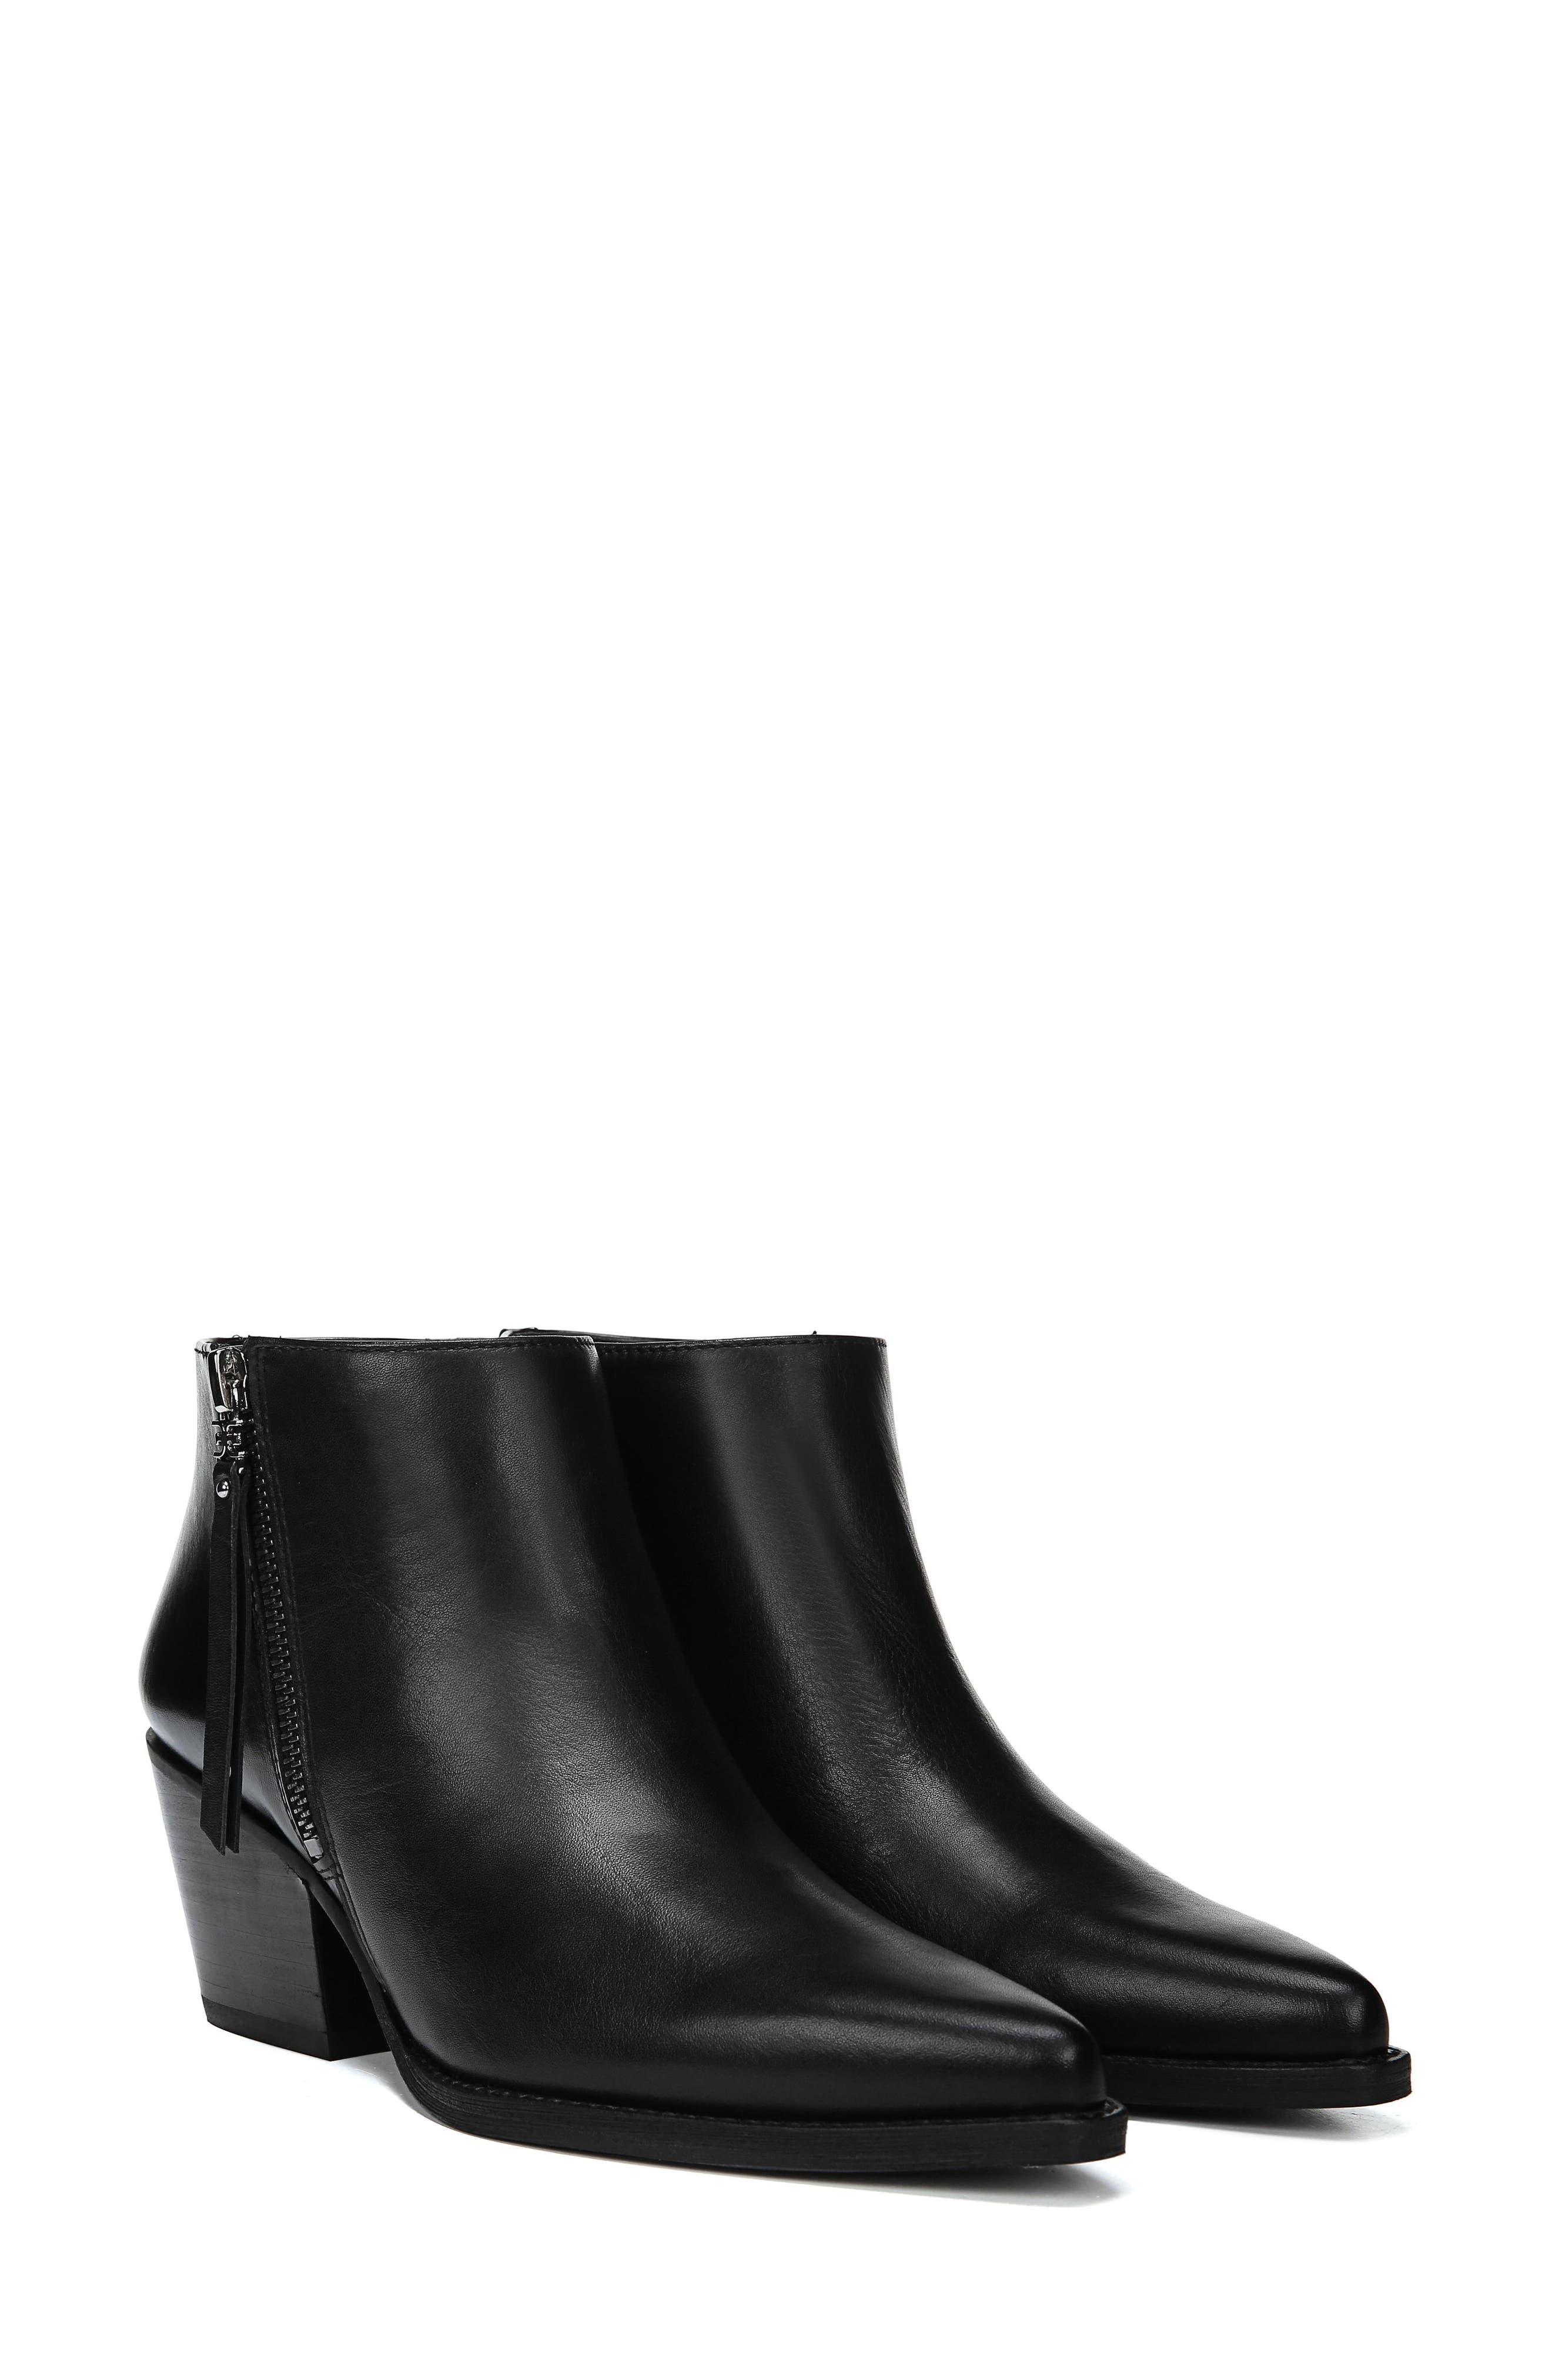 Walden Bootie,                             Alternate thumbnail 7, color,                             BLACK LEATHER